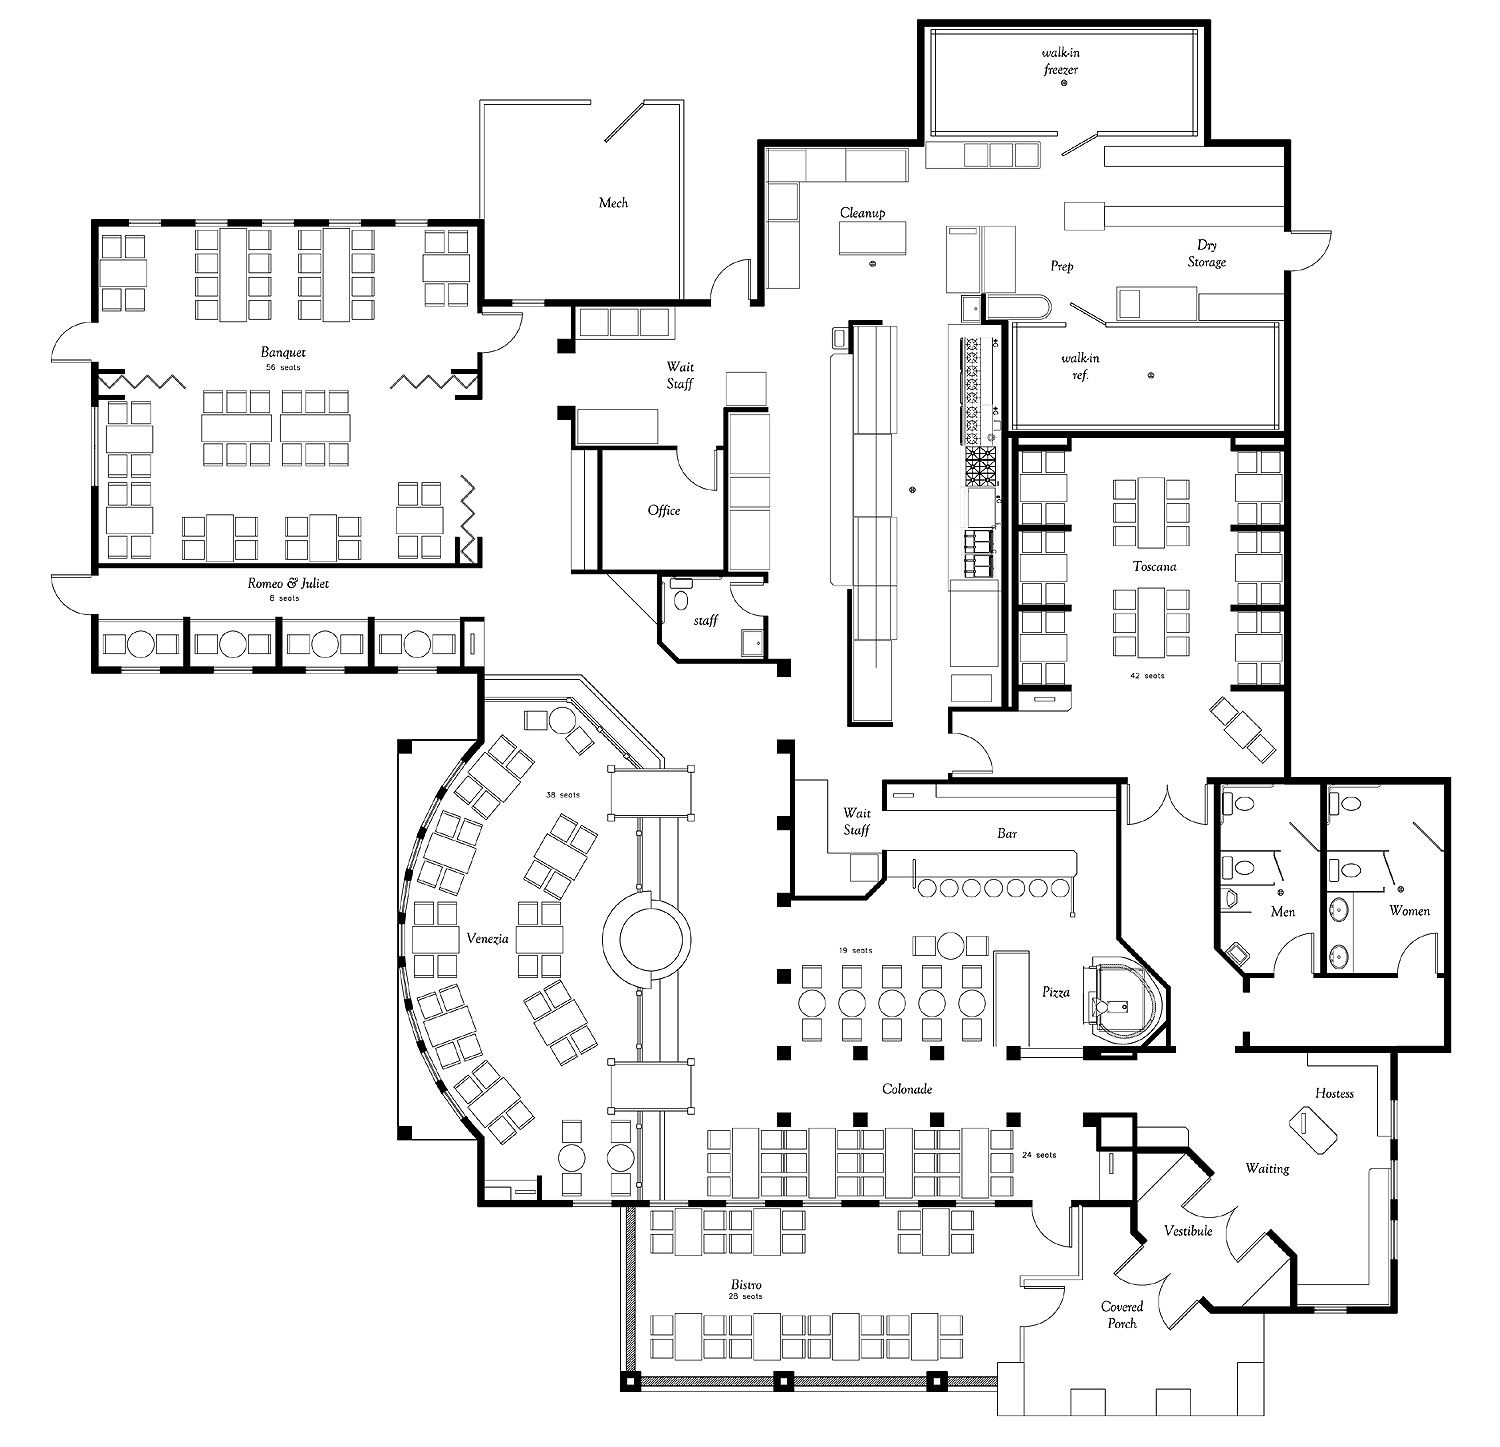 Restaurant Kitchen Layout Autocad: Home--Floorplans: Commercial